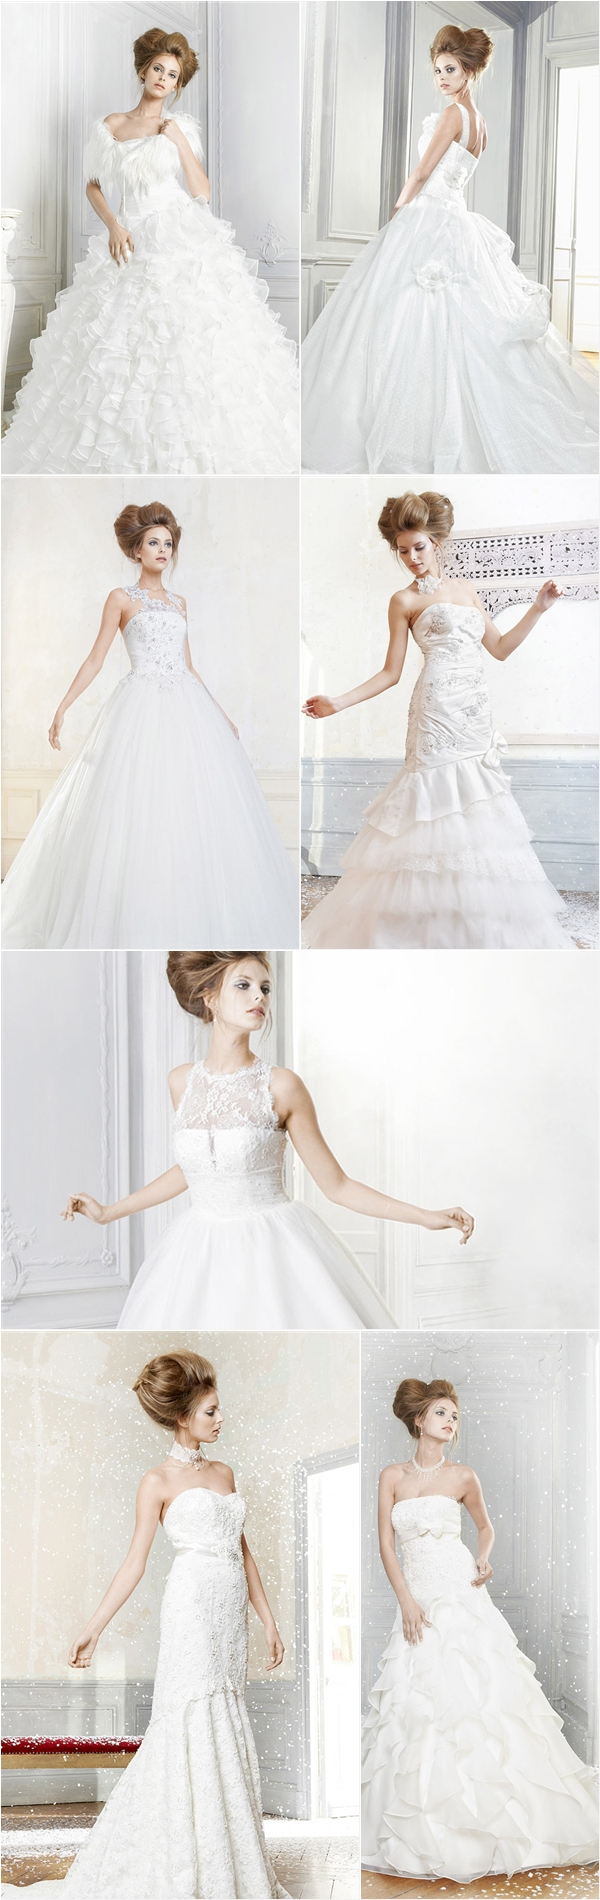 301 moved permanently for The loft wedding dresses